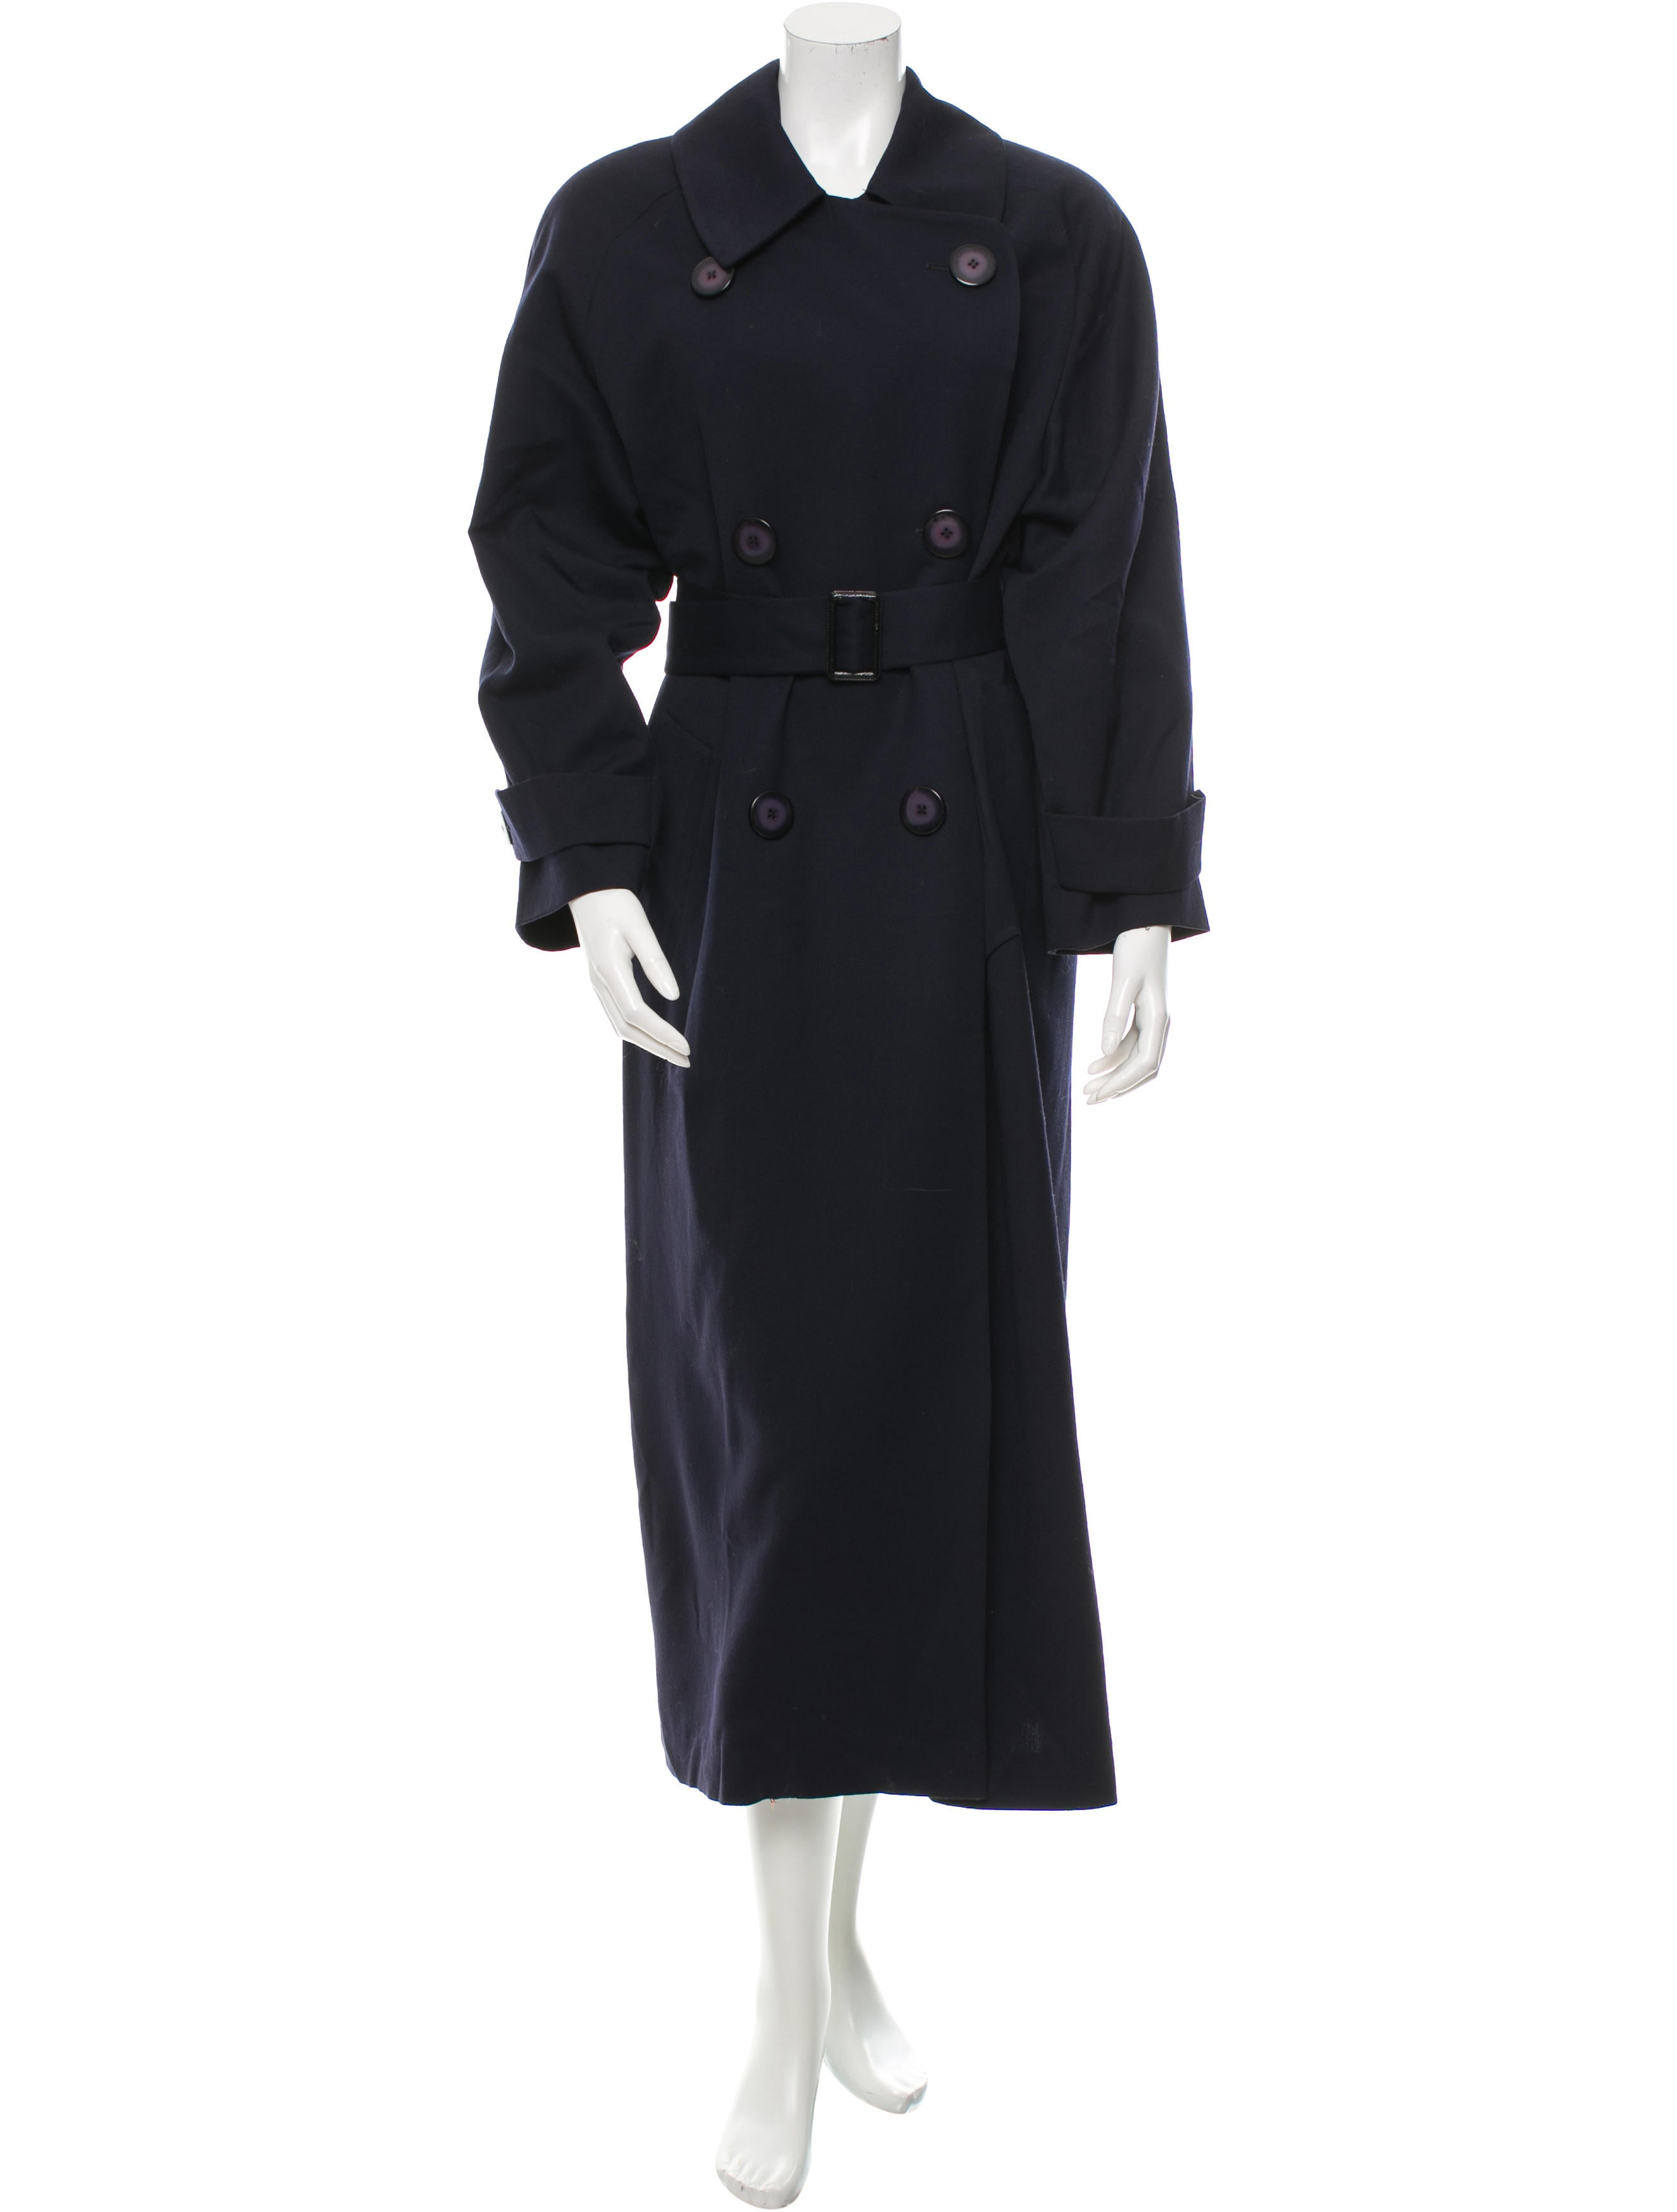 Christian dior button up trench coat clothing chr45463 for Christian dior button up shirt